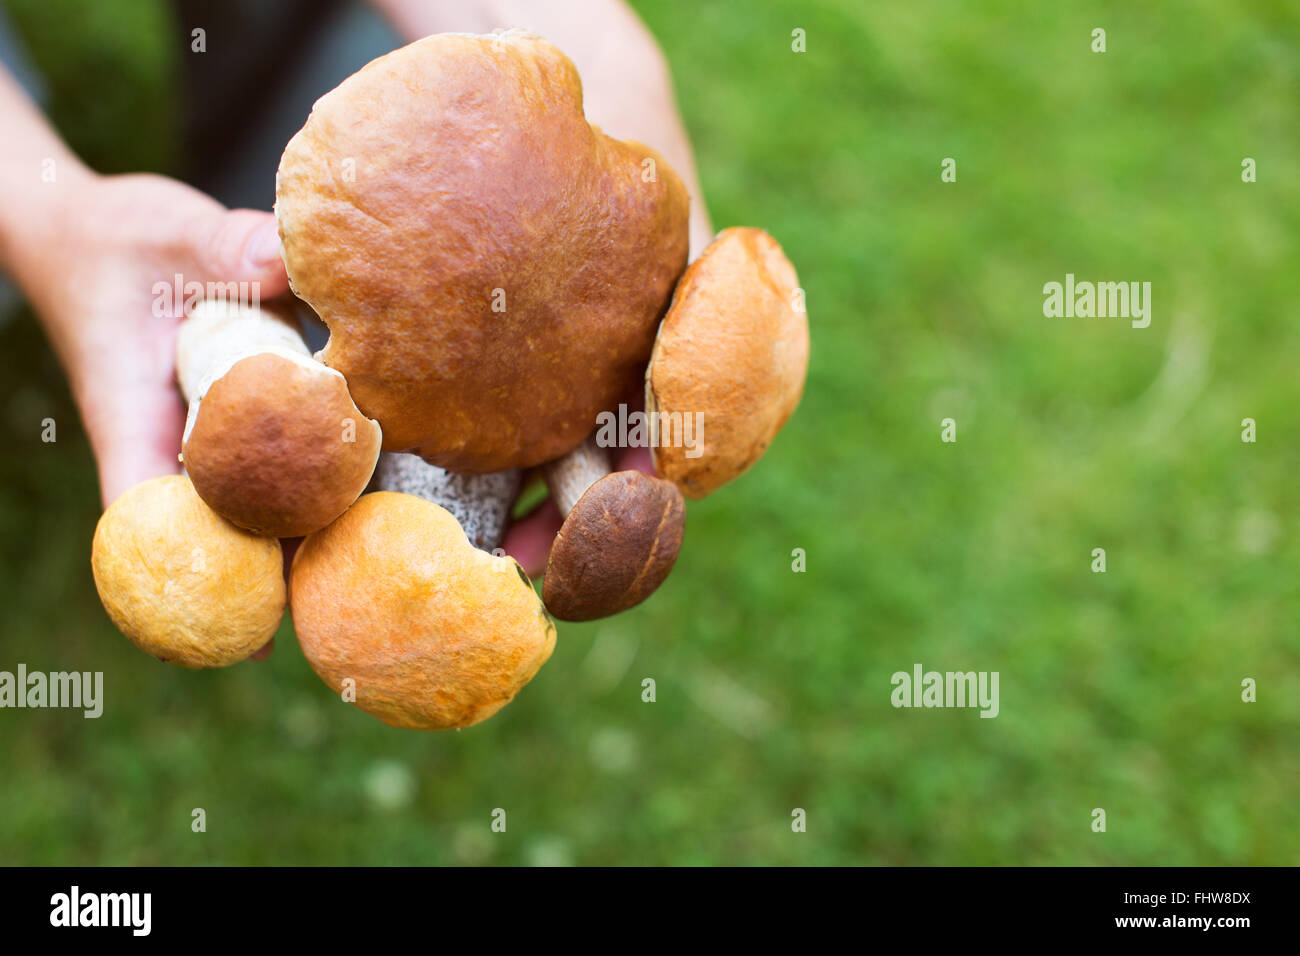 Porcini and boletus mushrooms in hands of woman. Shallow depth of field - Stock Image